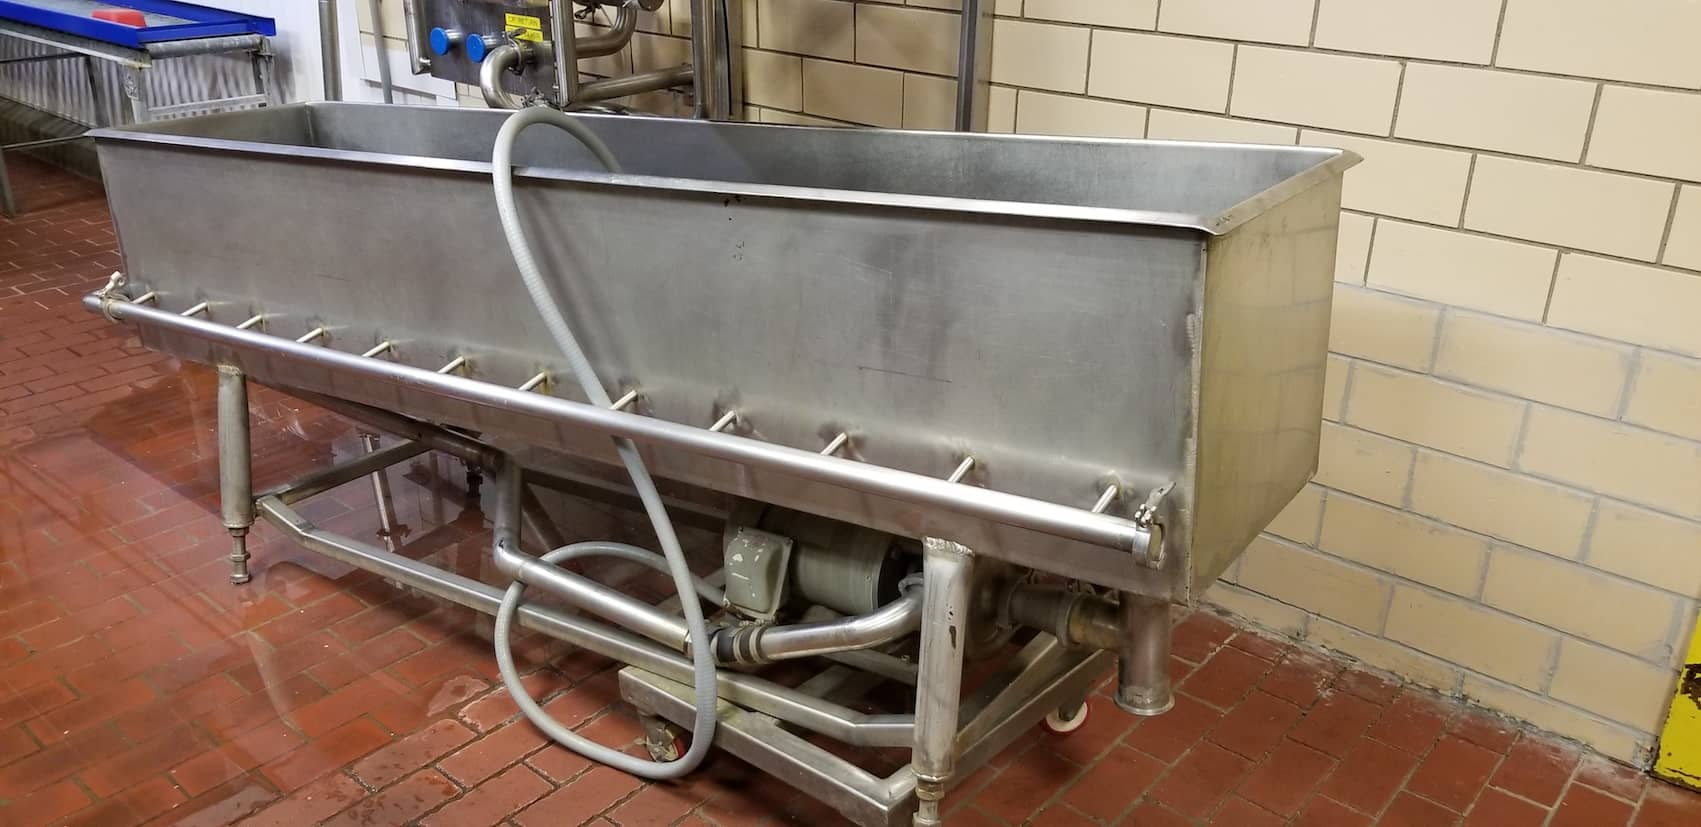 "8'L x 20""W x 19""D Jet Spray S/S Wash Trough, with Fristam 5hp Centrifugal Pump, Mounted on Casters"